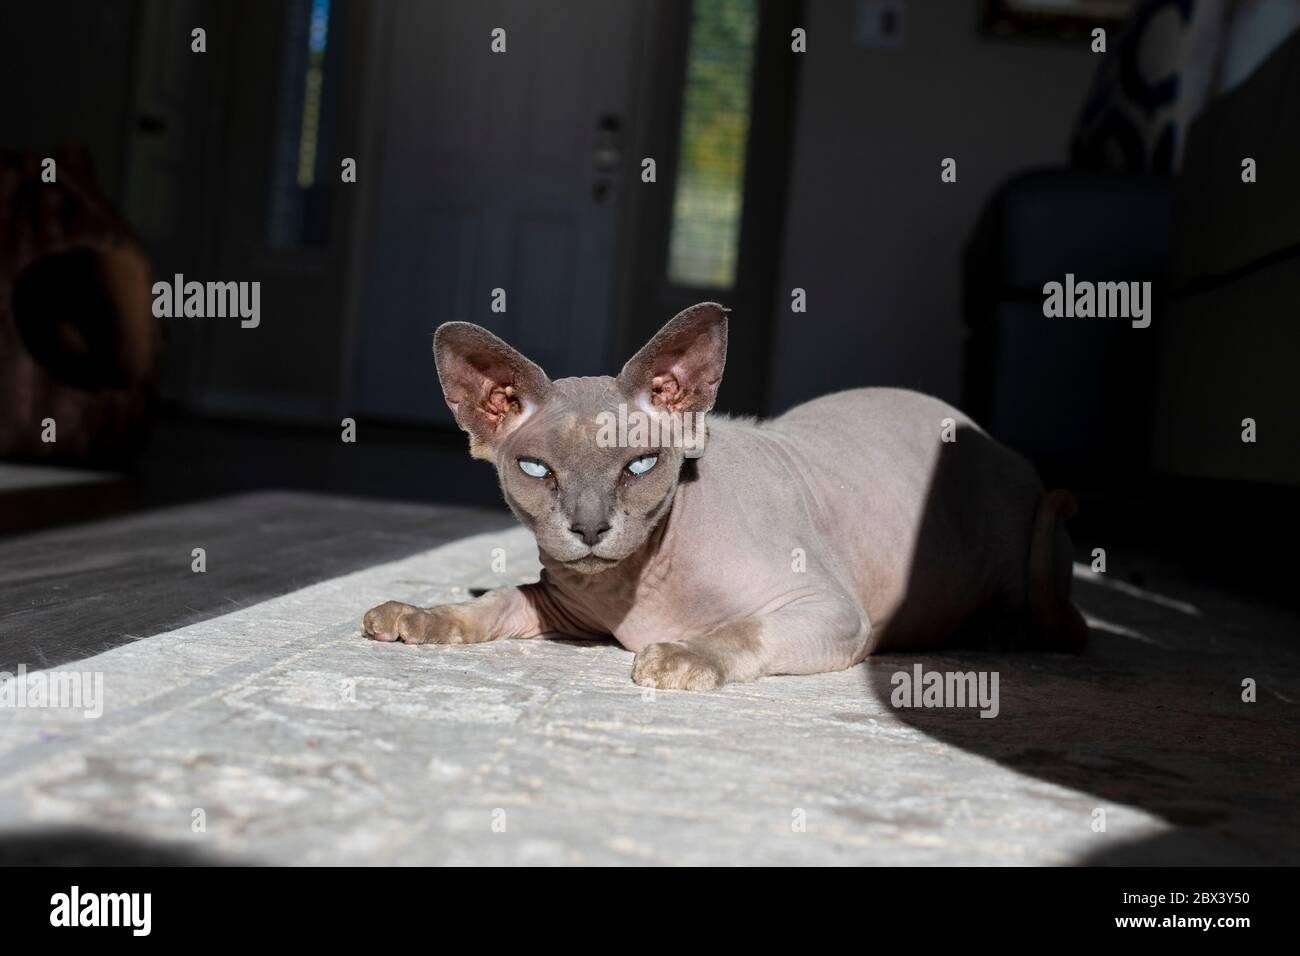 A pedigreed hairless Sphinx cat looks at the camera in a living room of a home. Stock Photo